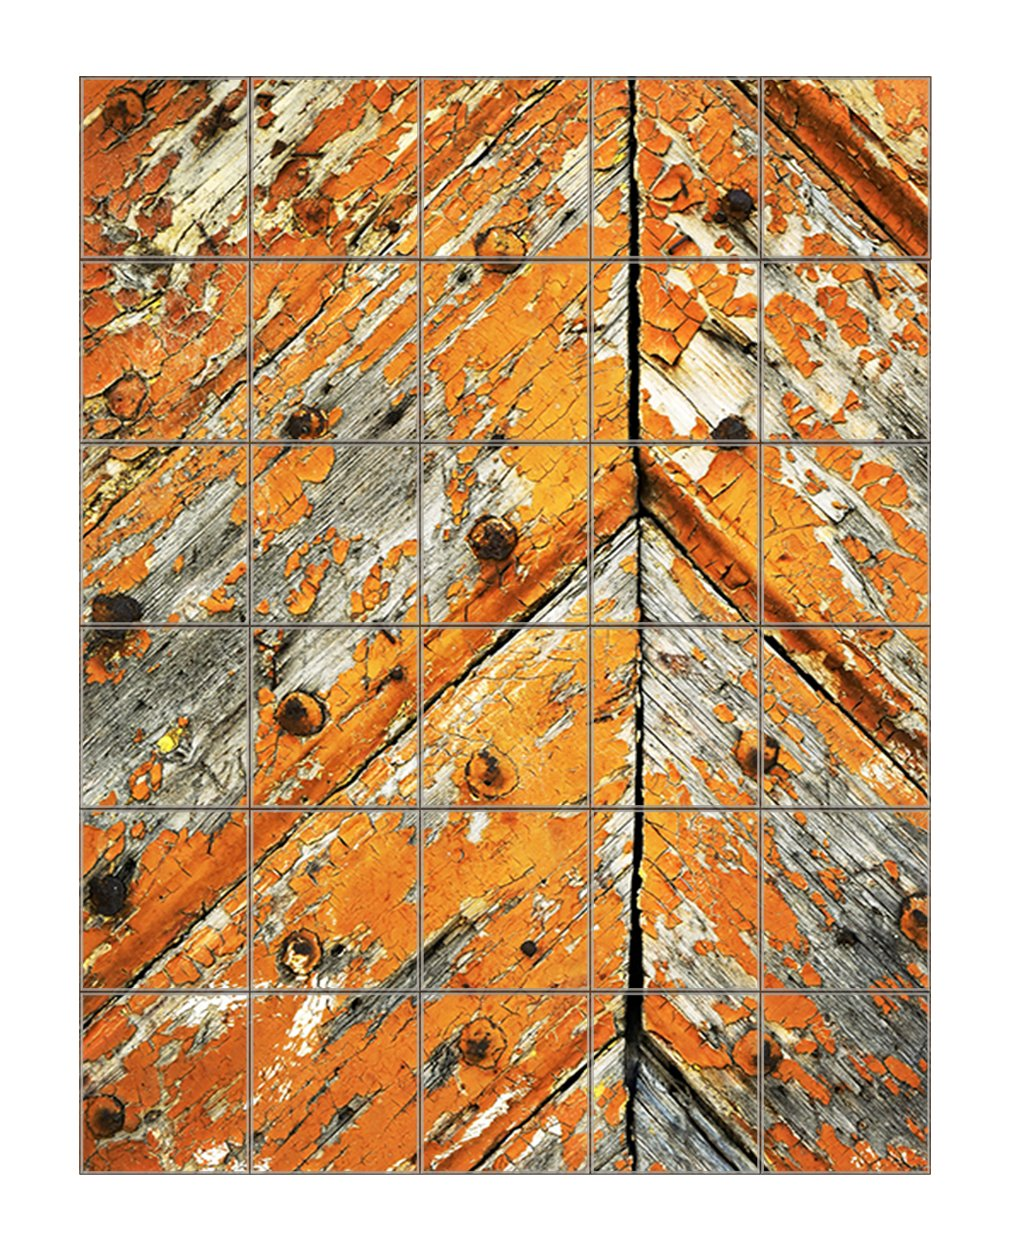 Old Peeled Paint On Wooden Doors Vertical Tile Mural Satin Finish 36''Hx30''W 6 Inch Tile